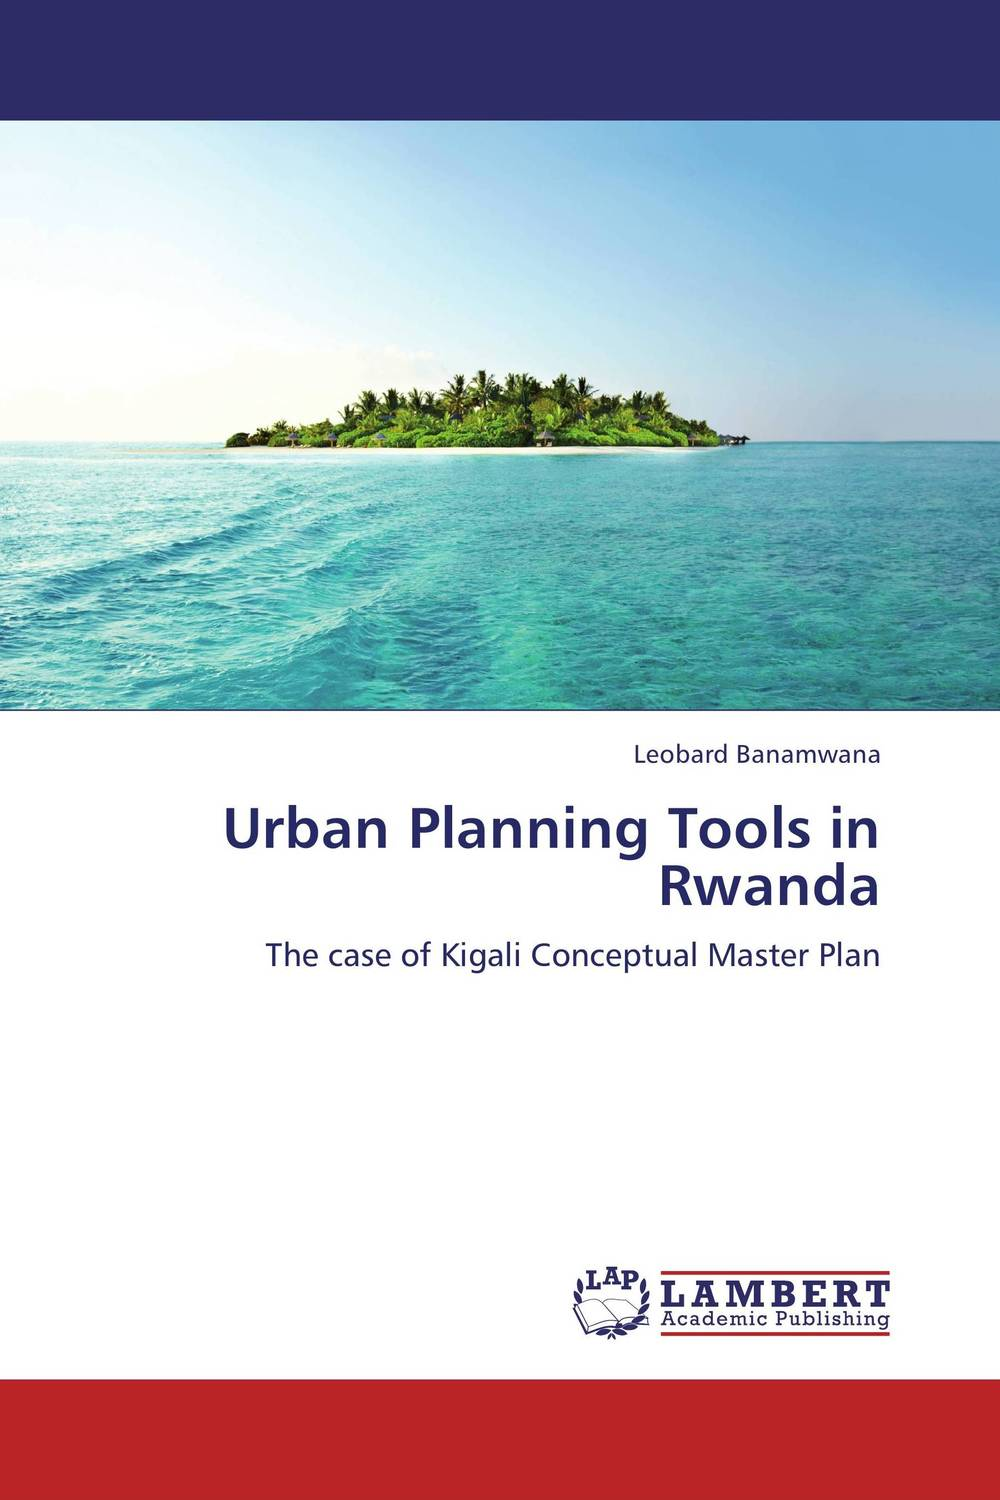 Urban Planning Tools in Rwanda keith billings master planning for architecture